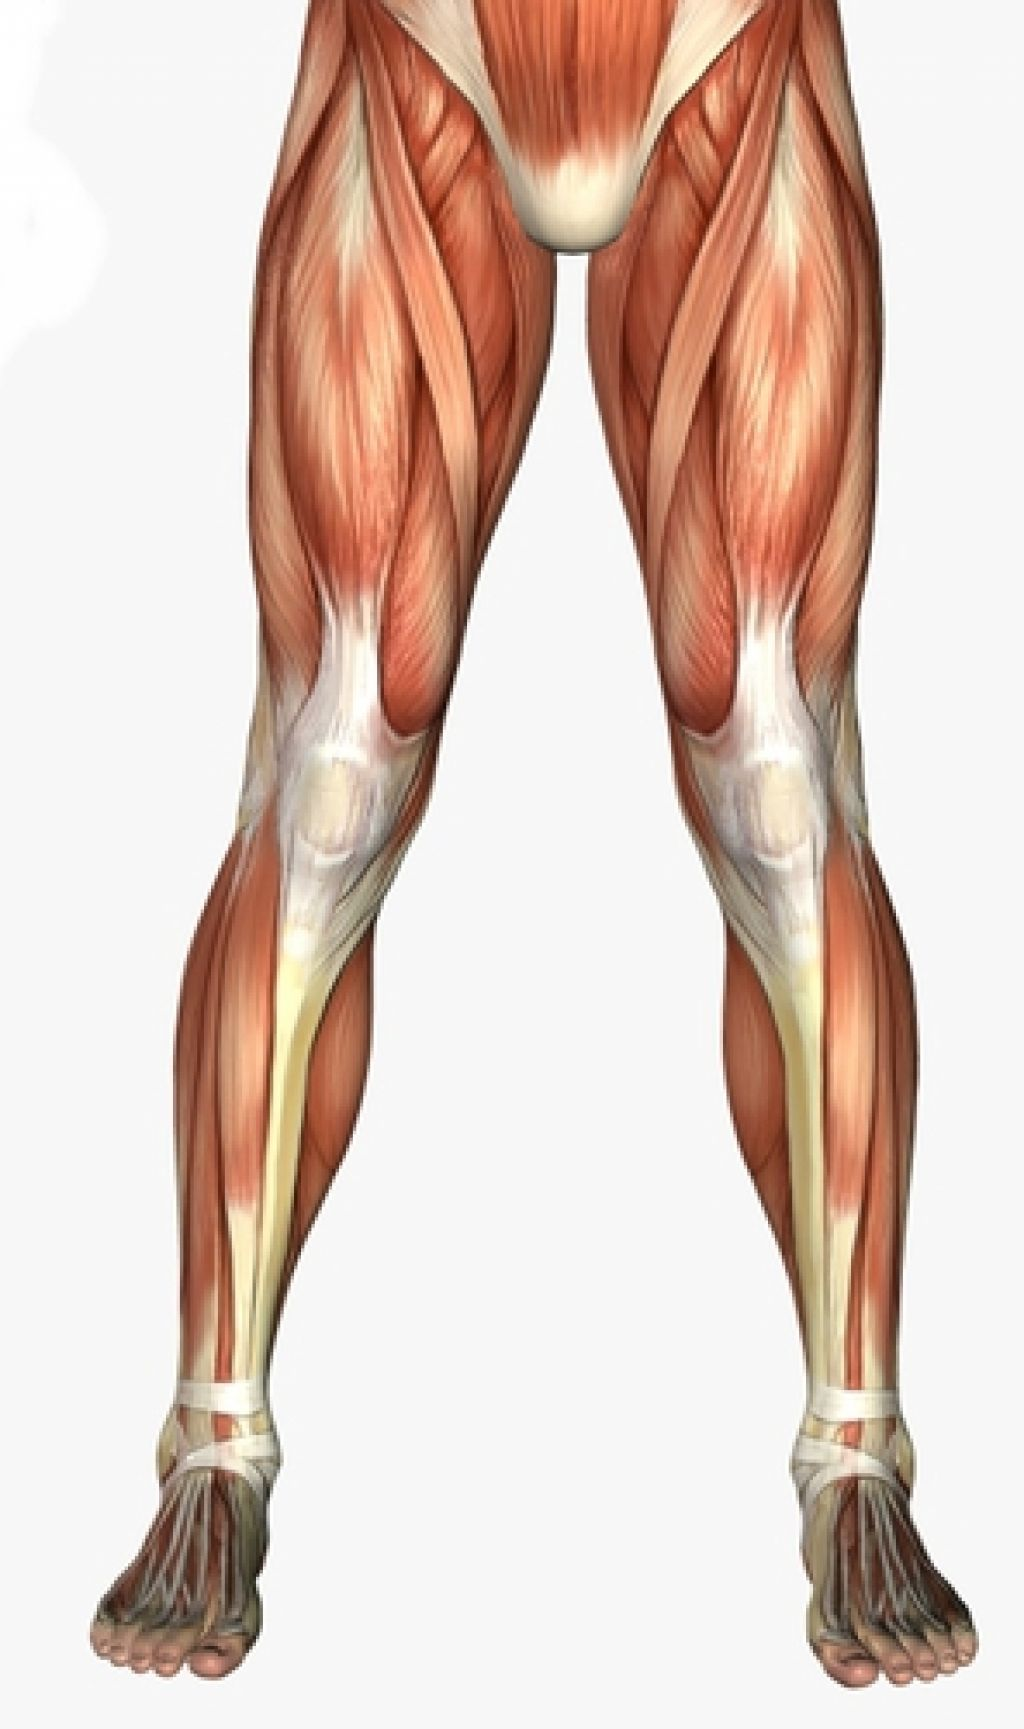 anatomy lower leg - Google Search | Sculpt | Pinterest